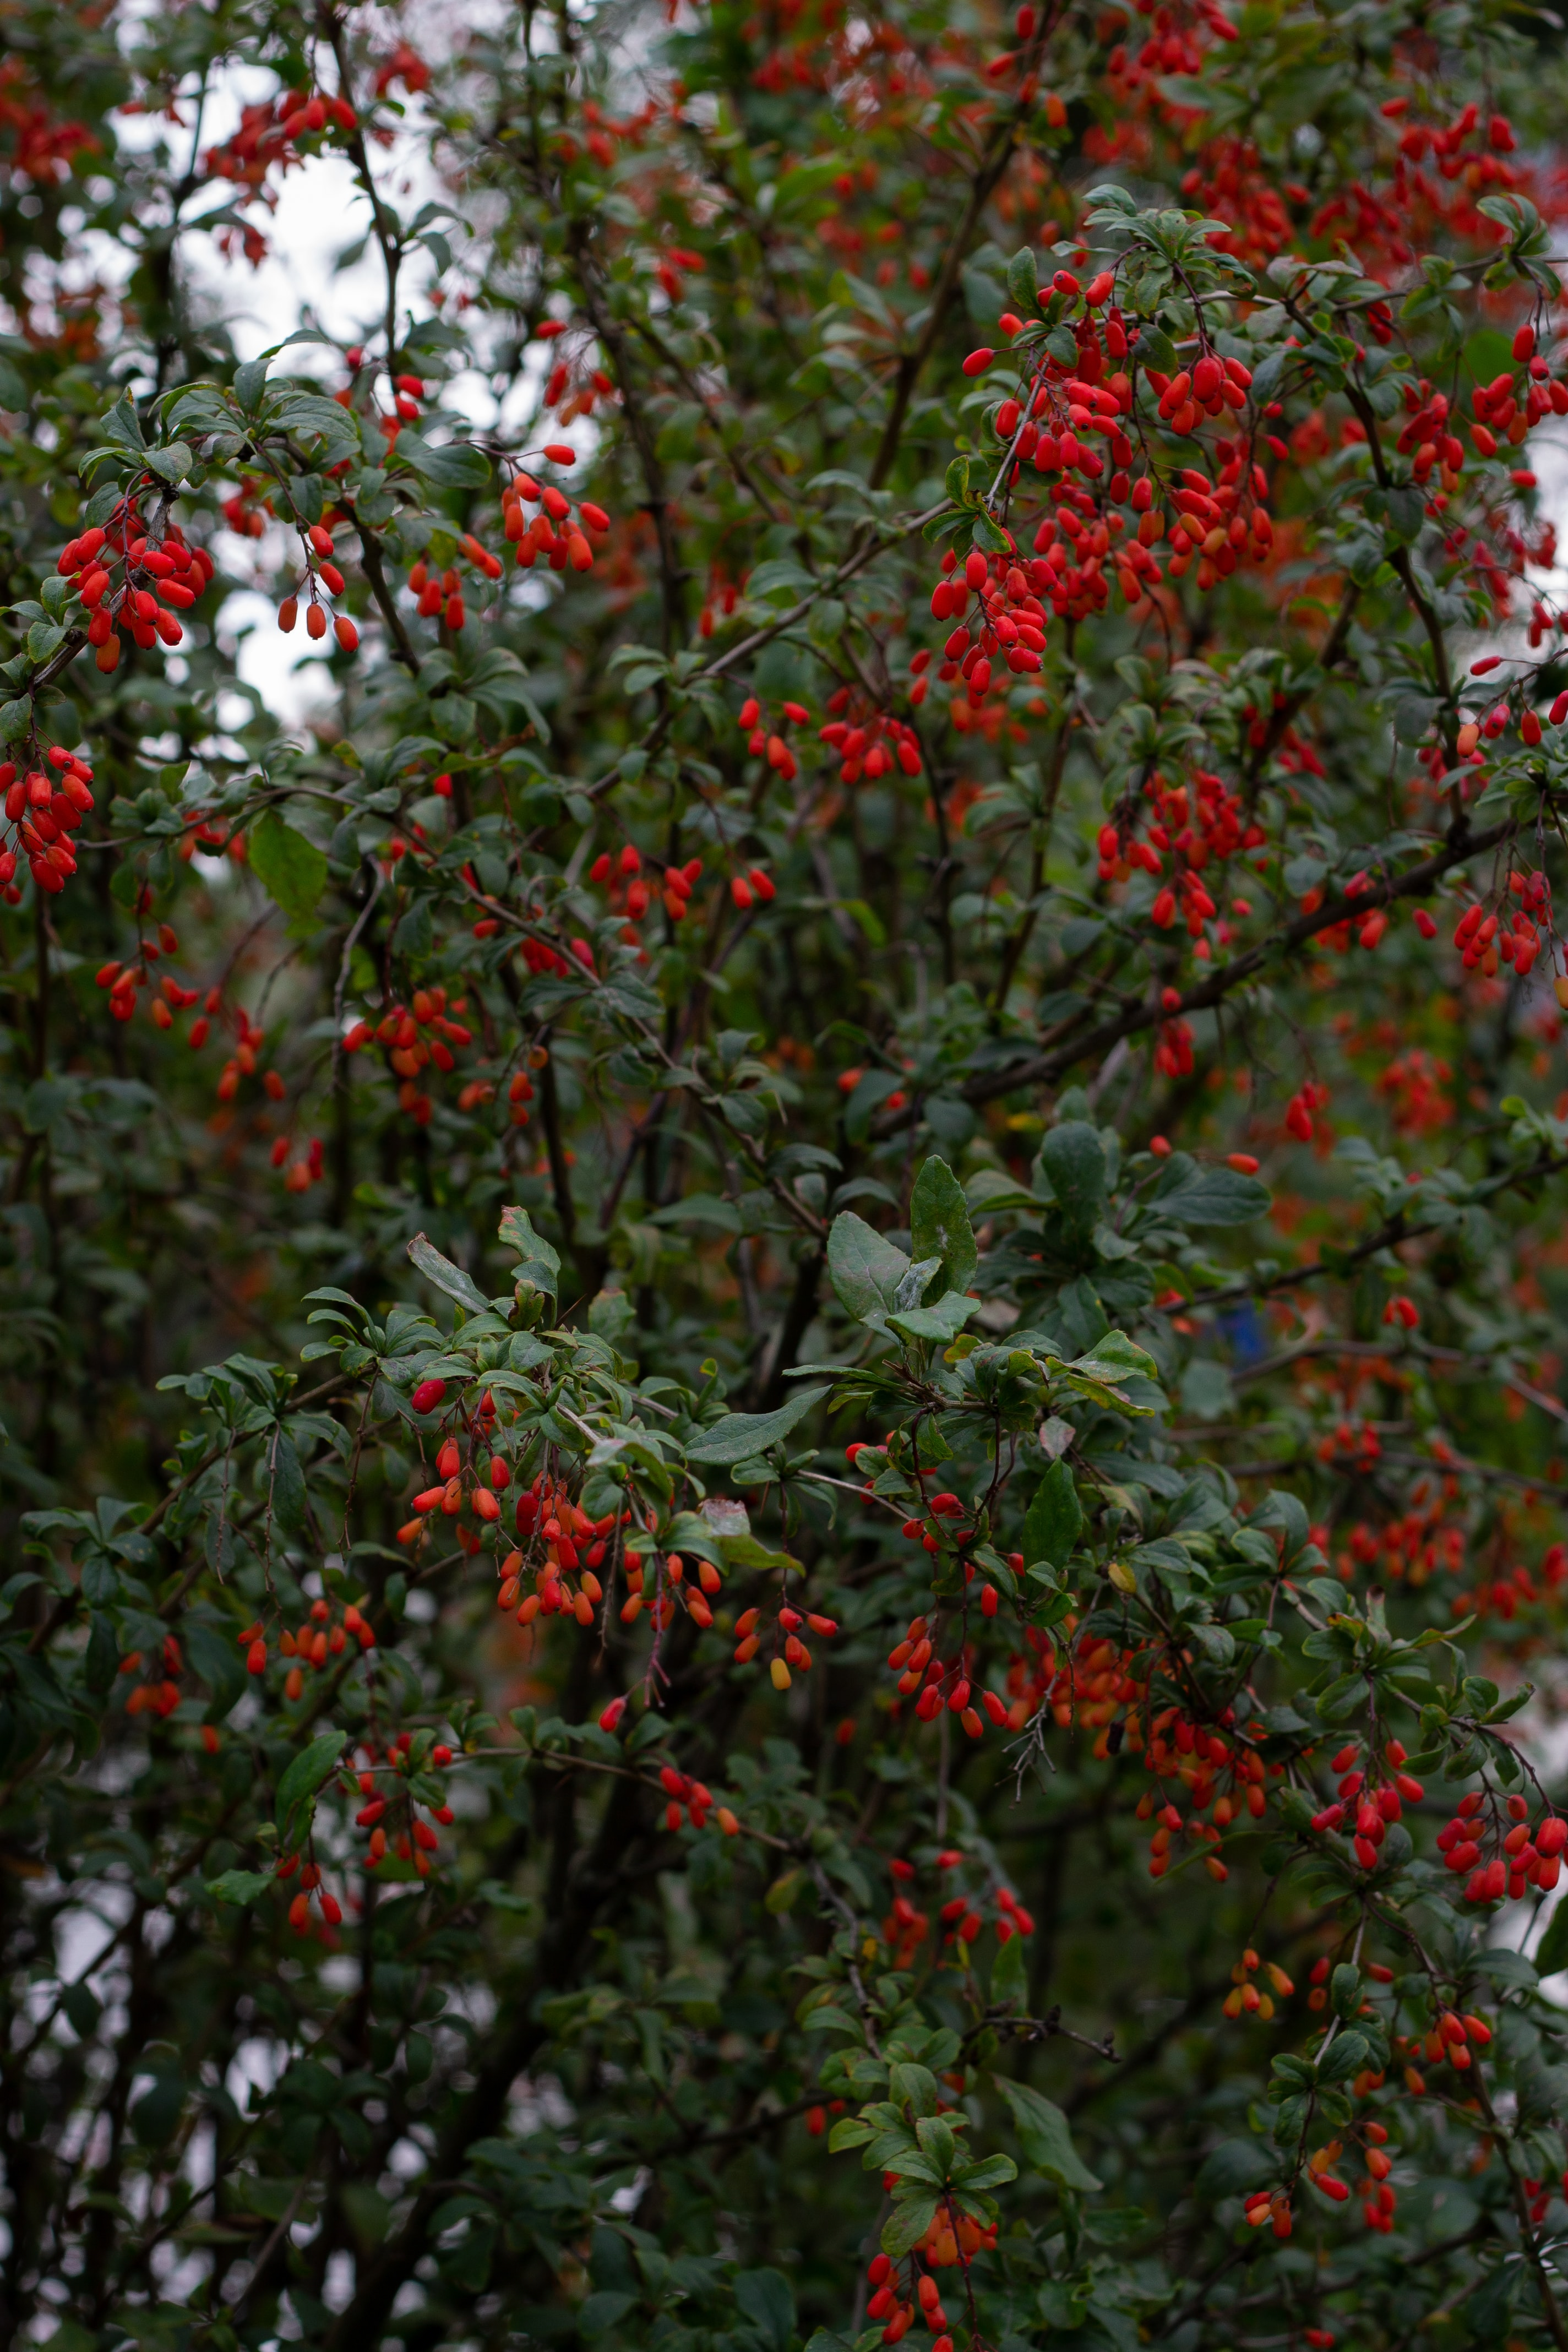 153289 download wallpaper Nature, Barberry, Branches, Wood, Tree, Berries screensavers and pictures for free